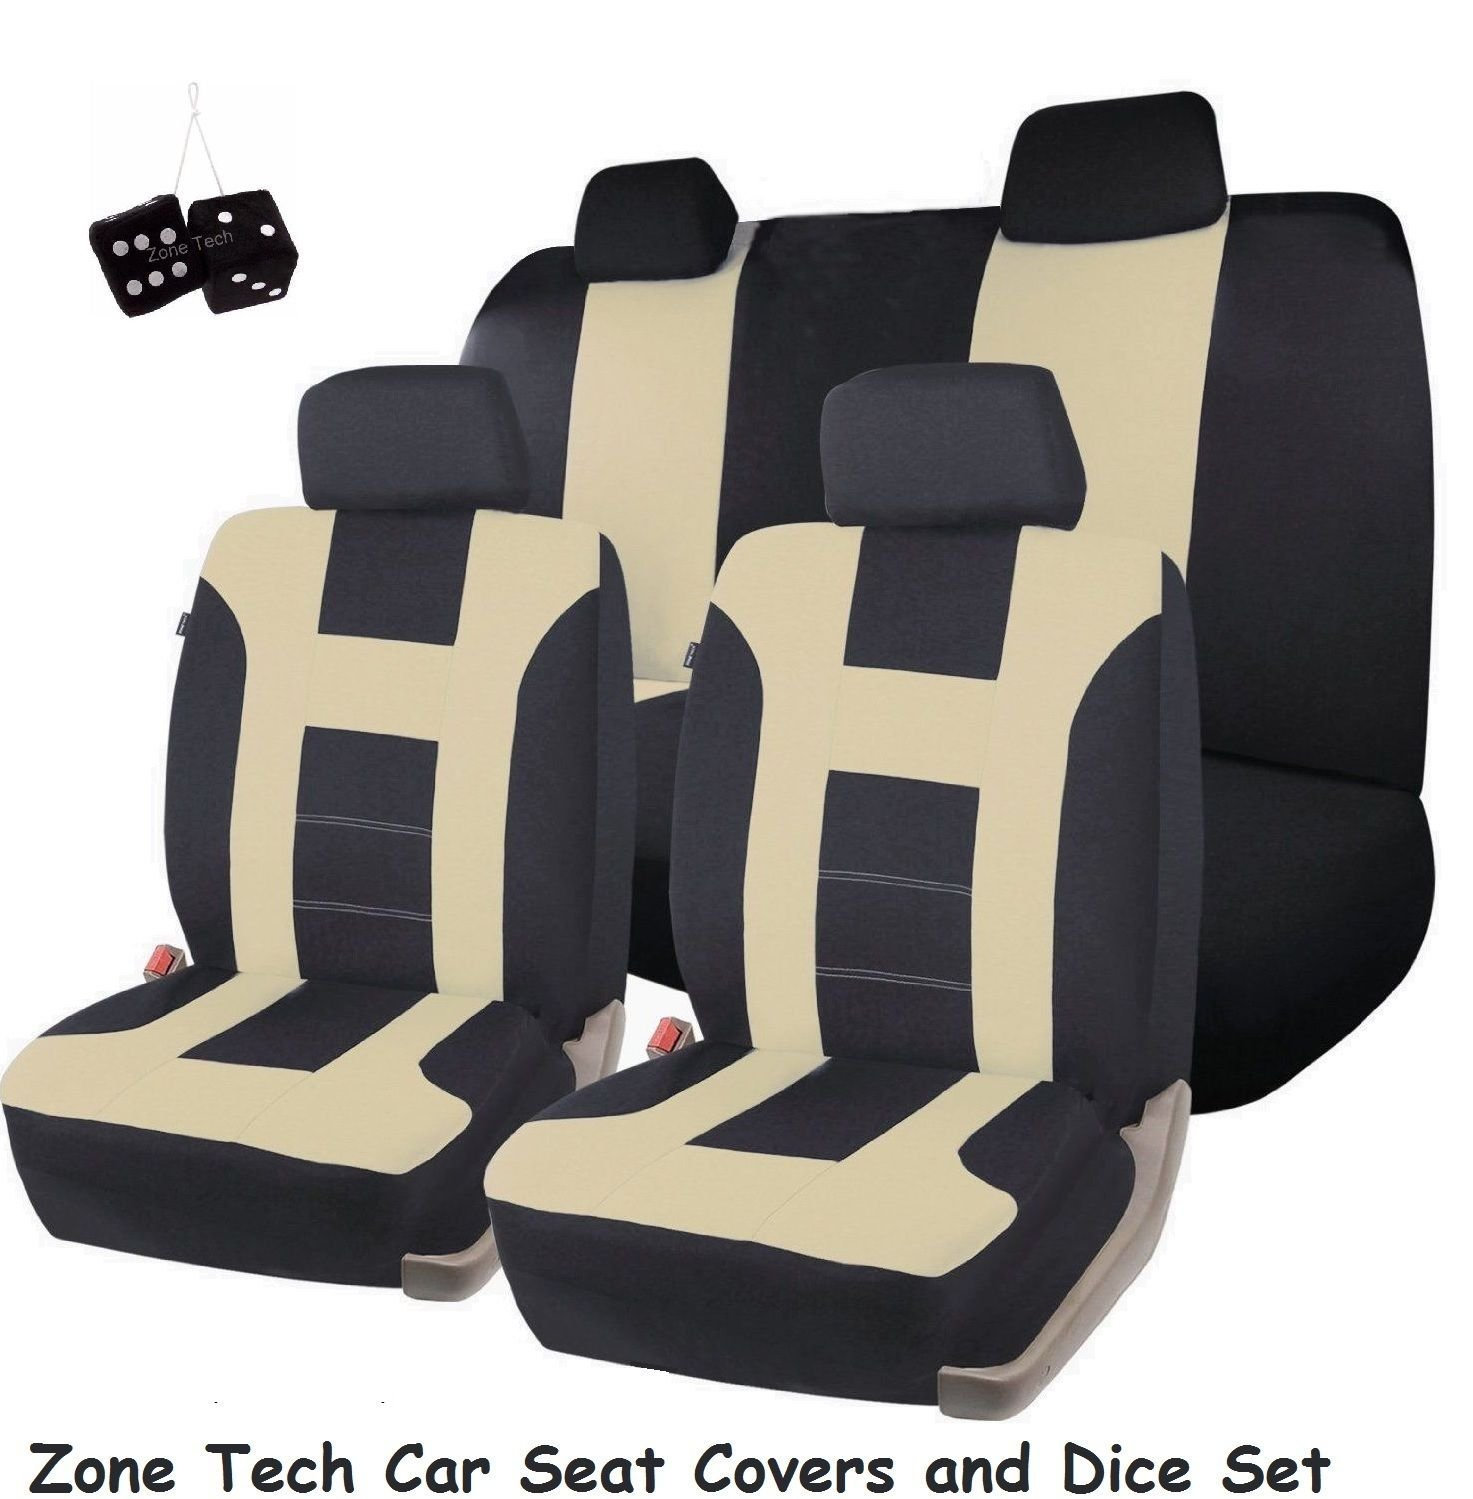 Zone Tech Universal Fit Premium Quality 100% Waterproof Breathable Full Set of Beige and Black Racing Style Seat Covers + Pair of Classic Black Plush Hanging Fuzzy Dice Set